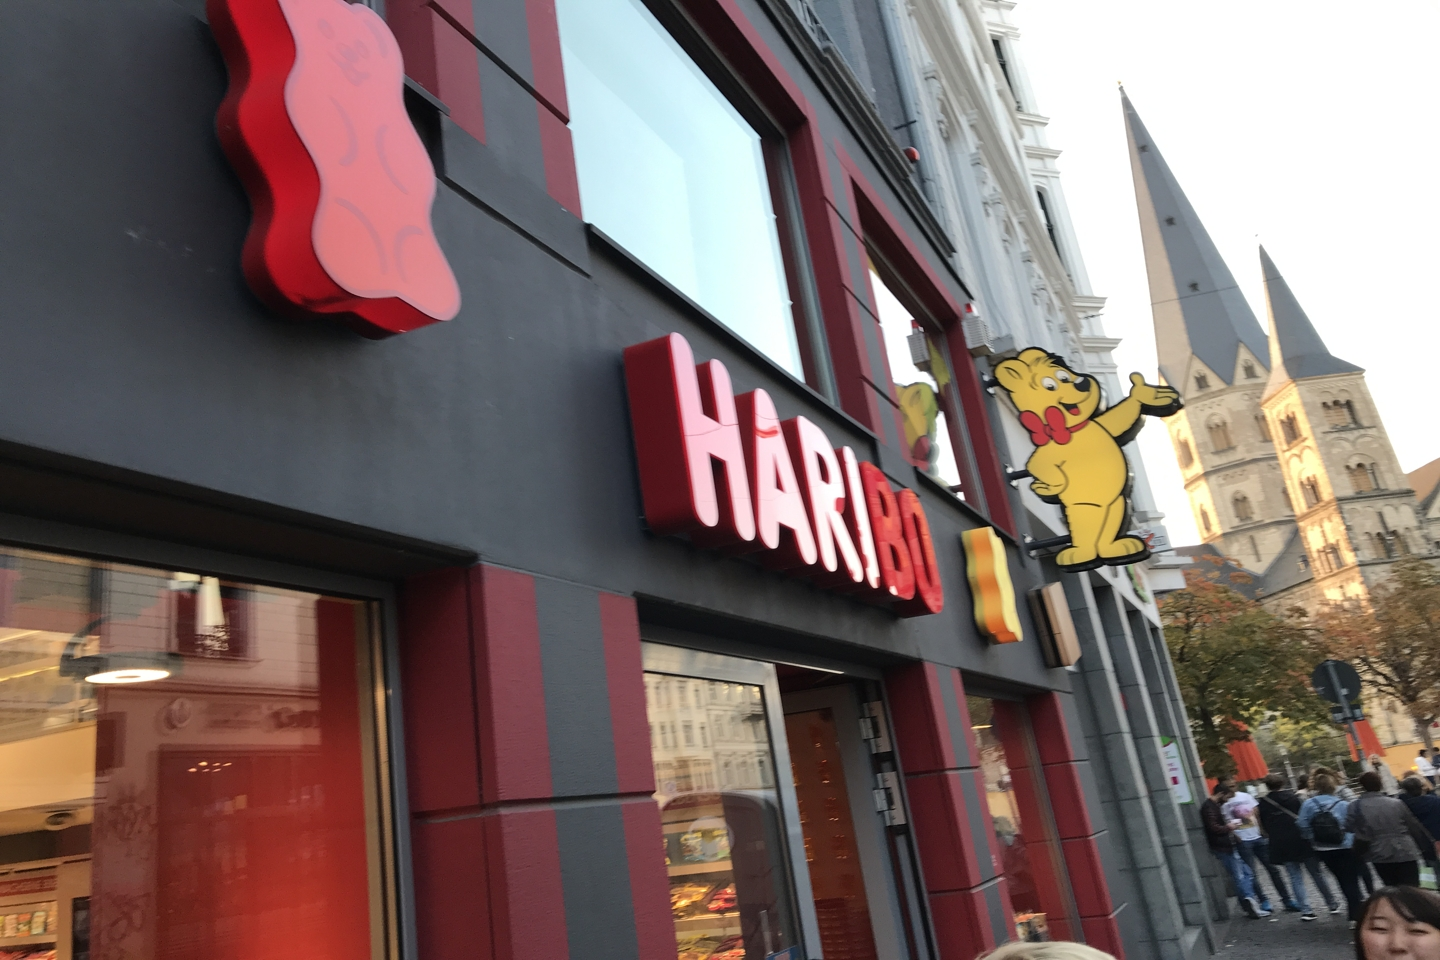 Entrance with logo of the Haribo Store in Bonn.